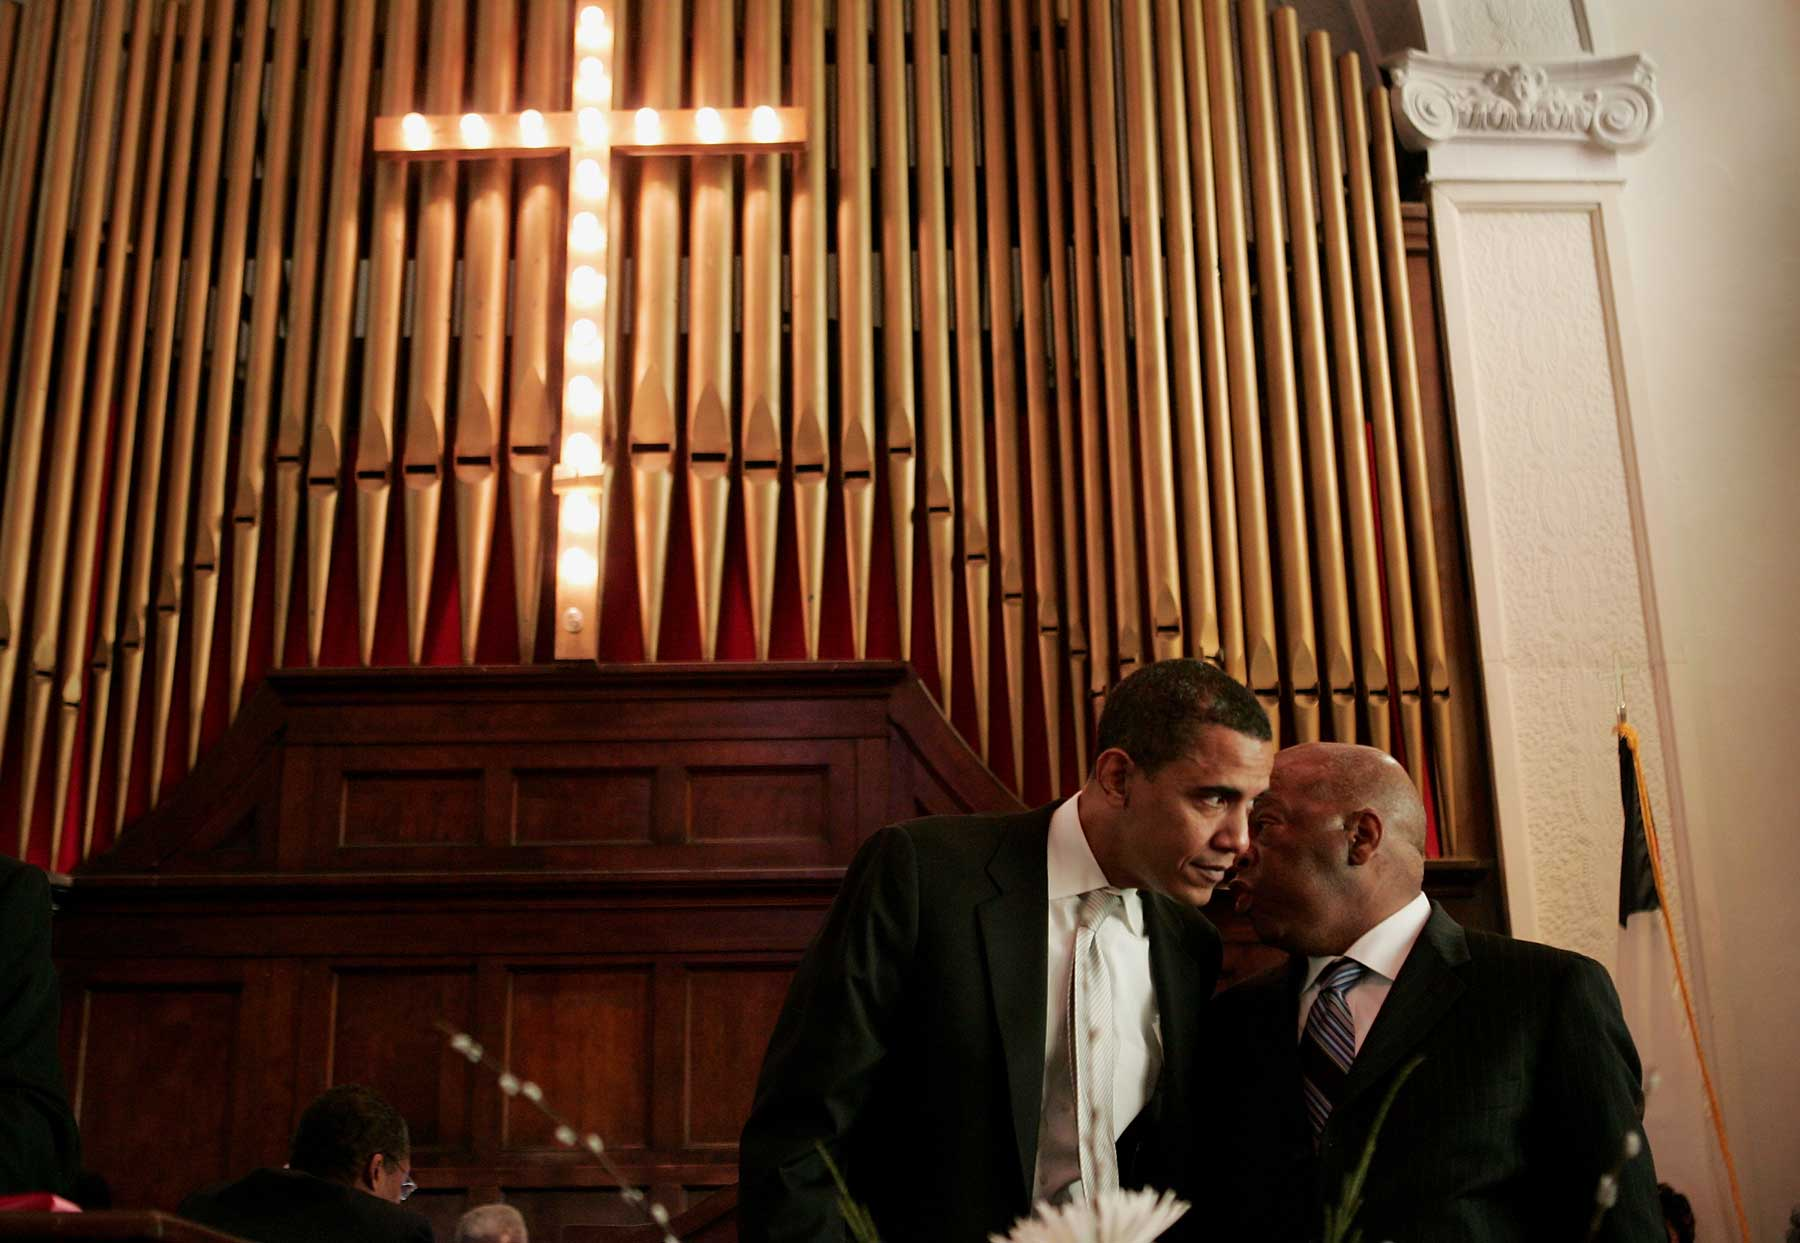 SELMA, AL - MARCH 4: Democratic Presidential candidate Senator Barack Obama (D-IL) (L) speaks with U.S. congressman John Lewis (D-GA) before addressing a crowd gathered for the commemoration of the 1965 Voting Rights March at Brown Chapel AME Church March 4, 2007 in Selma, Alabama. During the 1965 march, which was to go from Selma to Montgomery, Alabama, police used tear gas and beat back the marchers when they reached the Pettus Bridge. (Photo by Scott Olson/Getty Images)